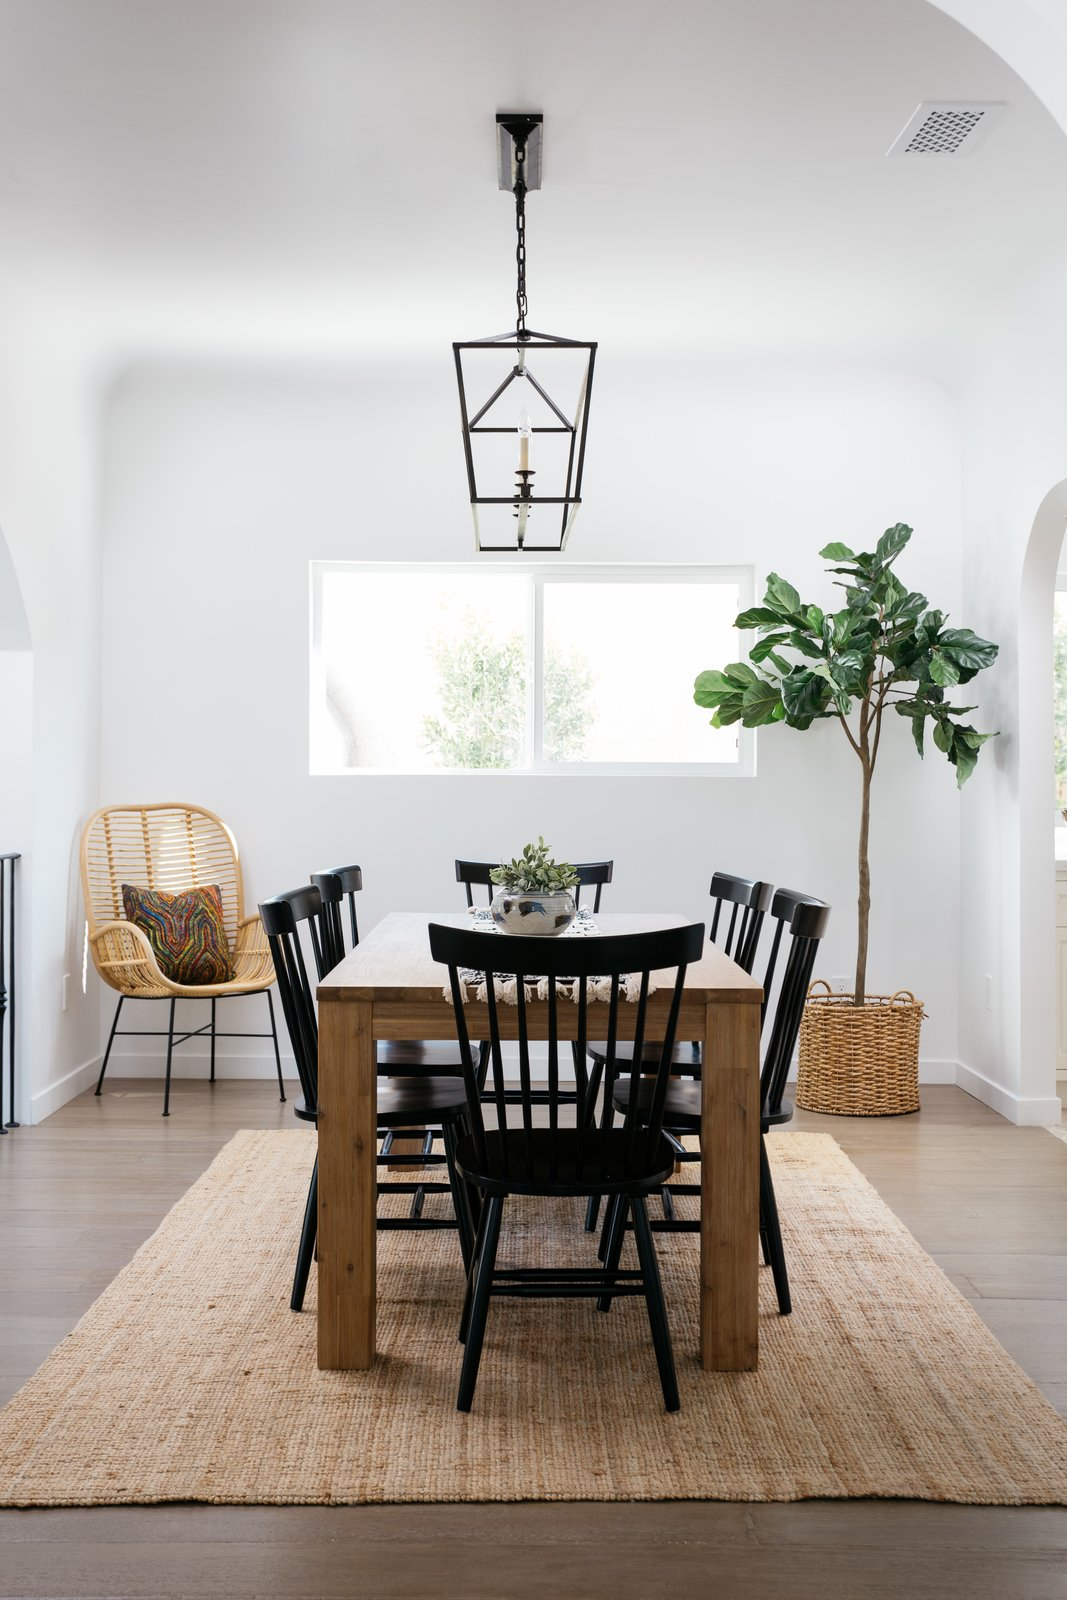 Dining Room, Chair, Pendant Lighting, Medium Hardwood Floor, Table, and Rug Floor The dining room leads to a spacious kitchen.    Photo 7 of 20 in An Updated Spanish-Style Abode with an Artist Studio Hits the Market at $1.1M in L.A.